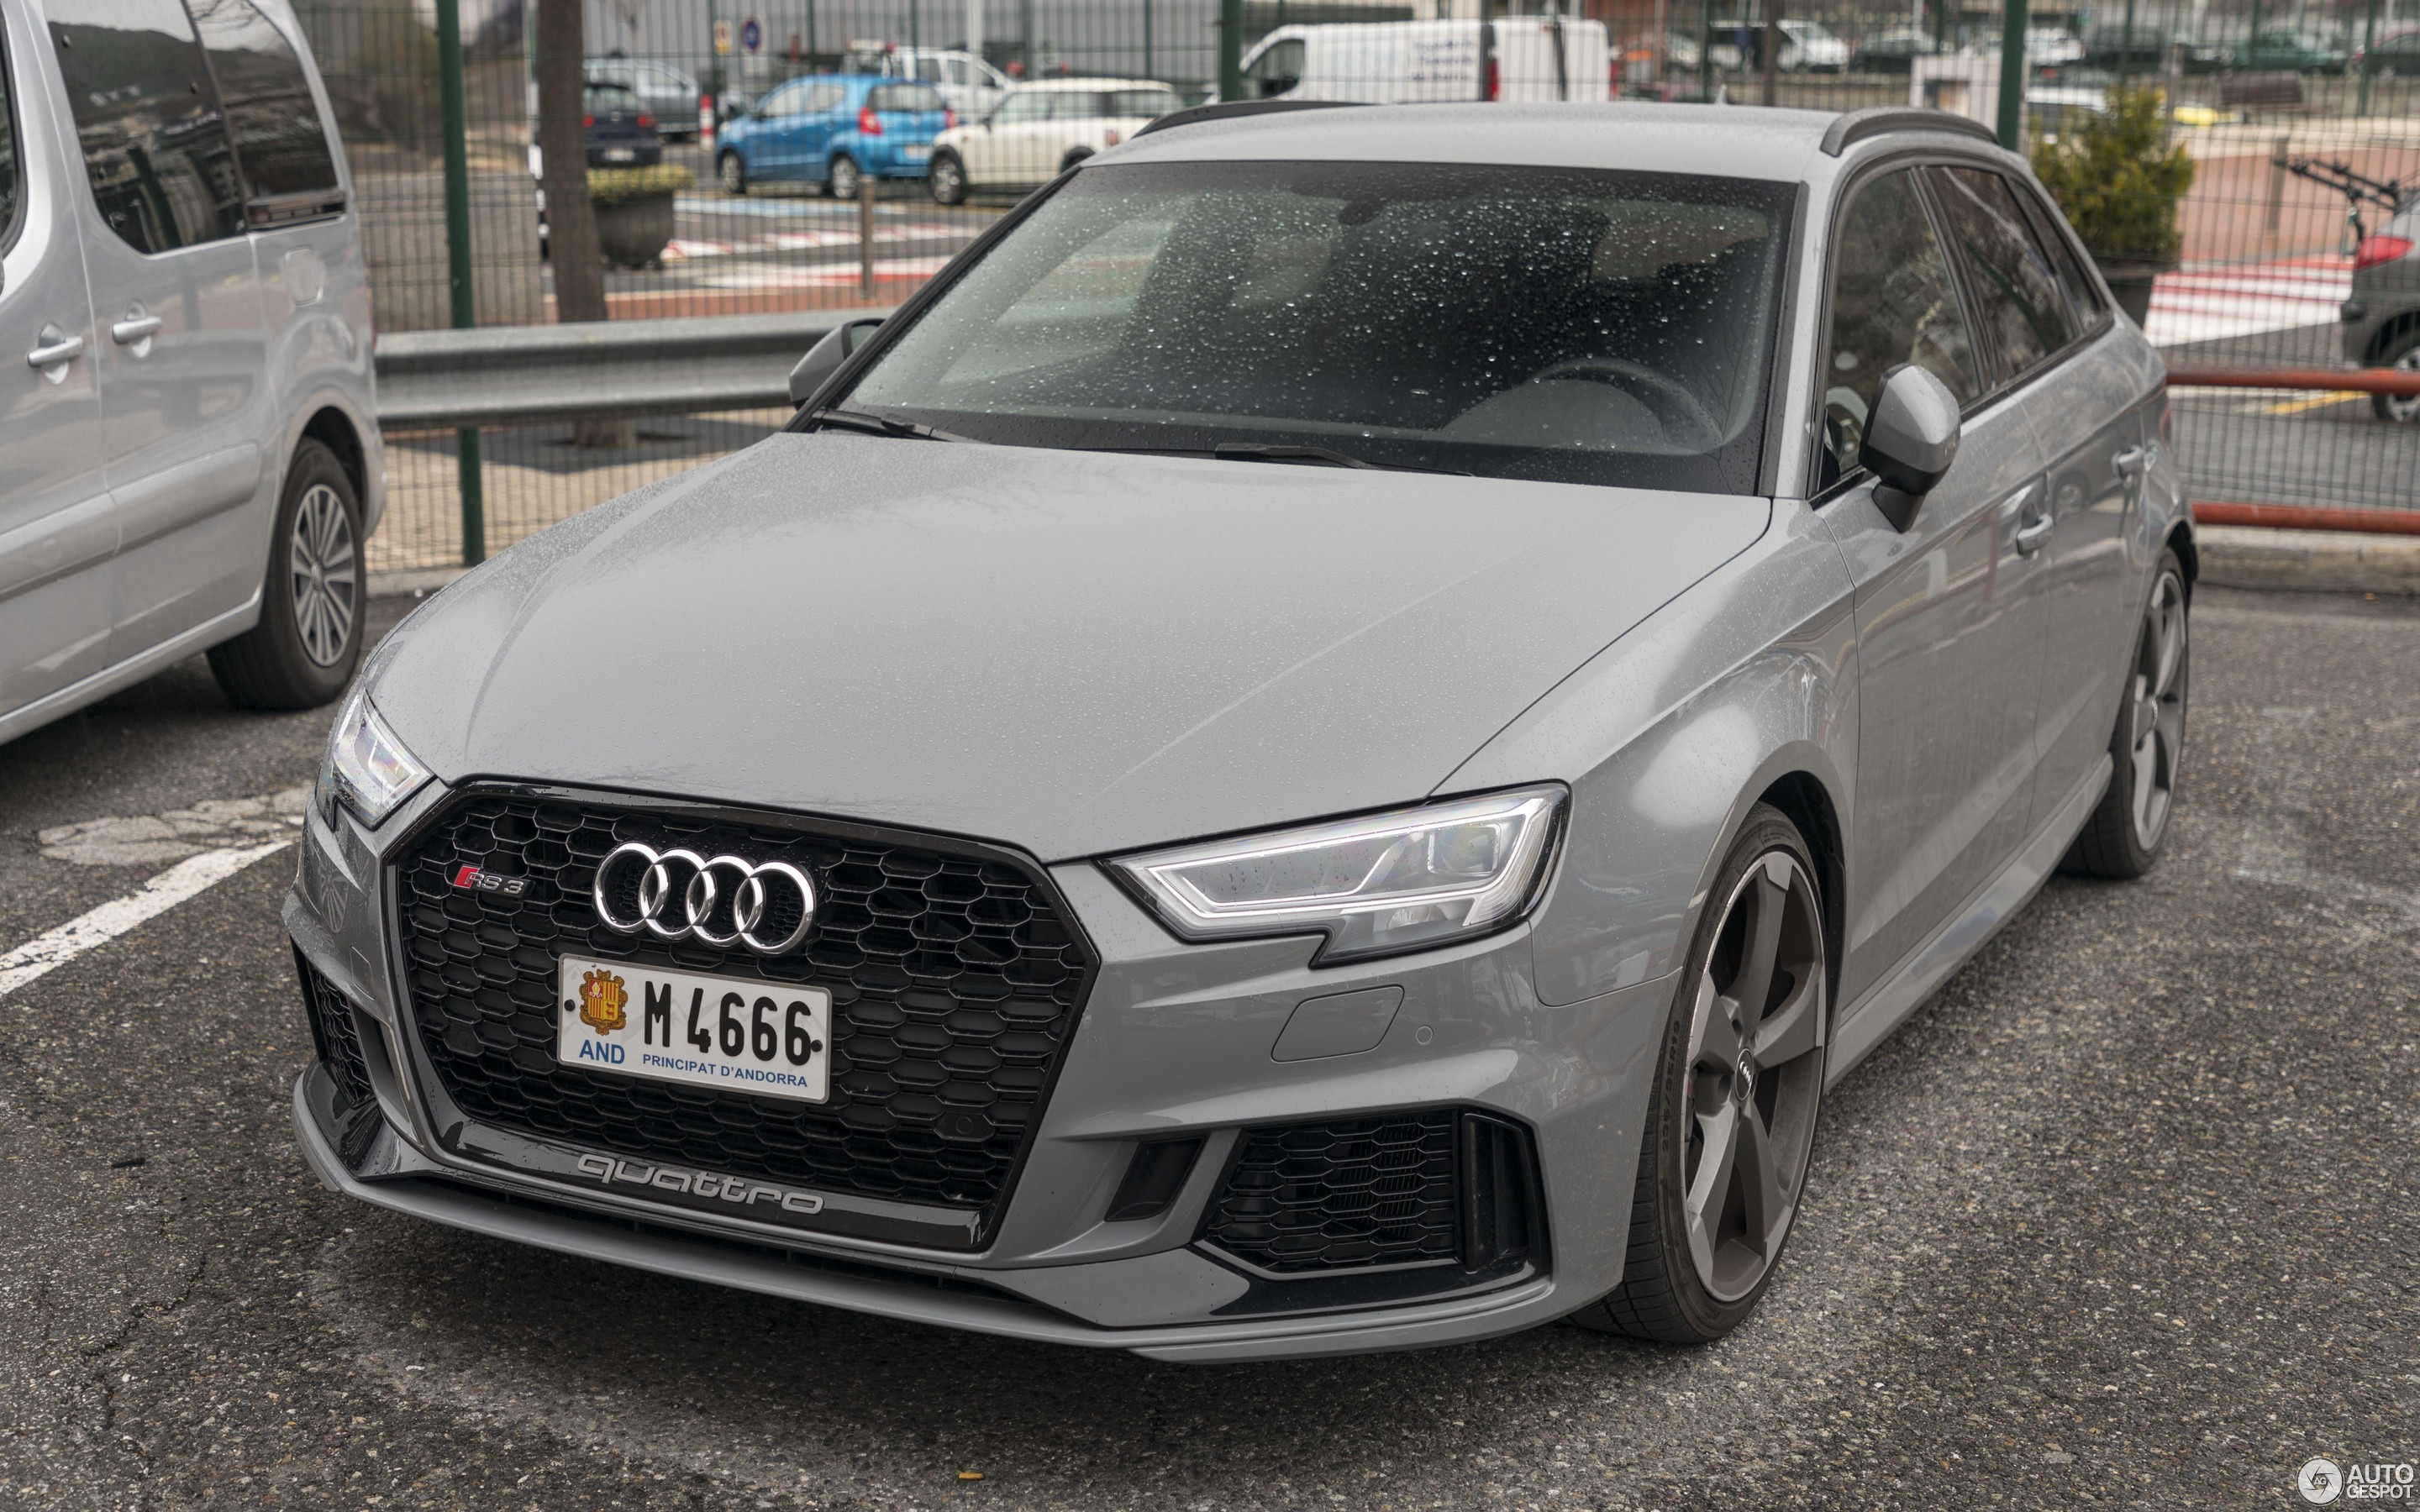 Audi RS3 Sportback 8V 2018 - 30 March 2018 - Autogespot